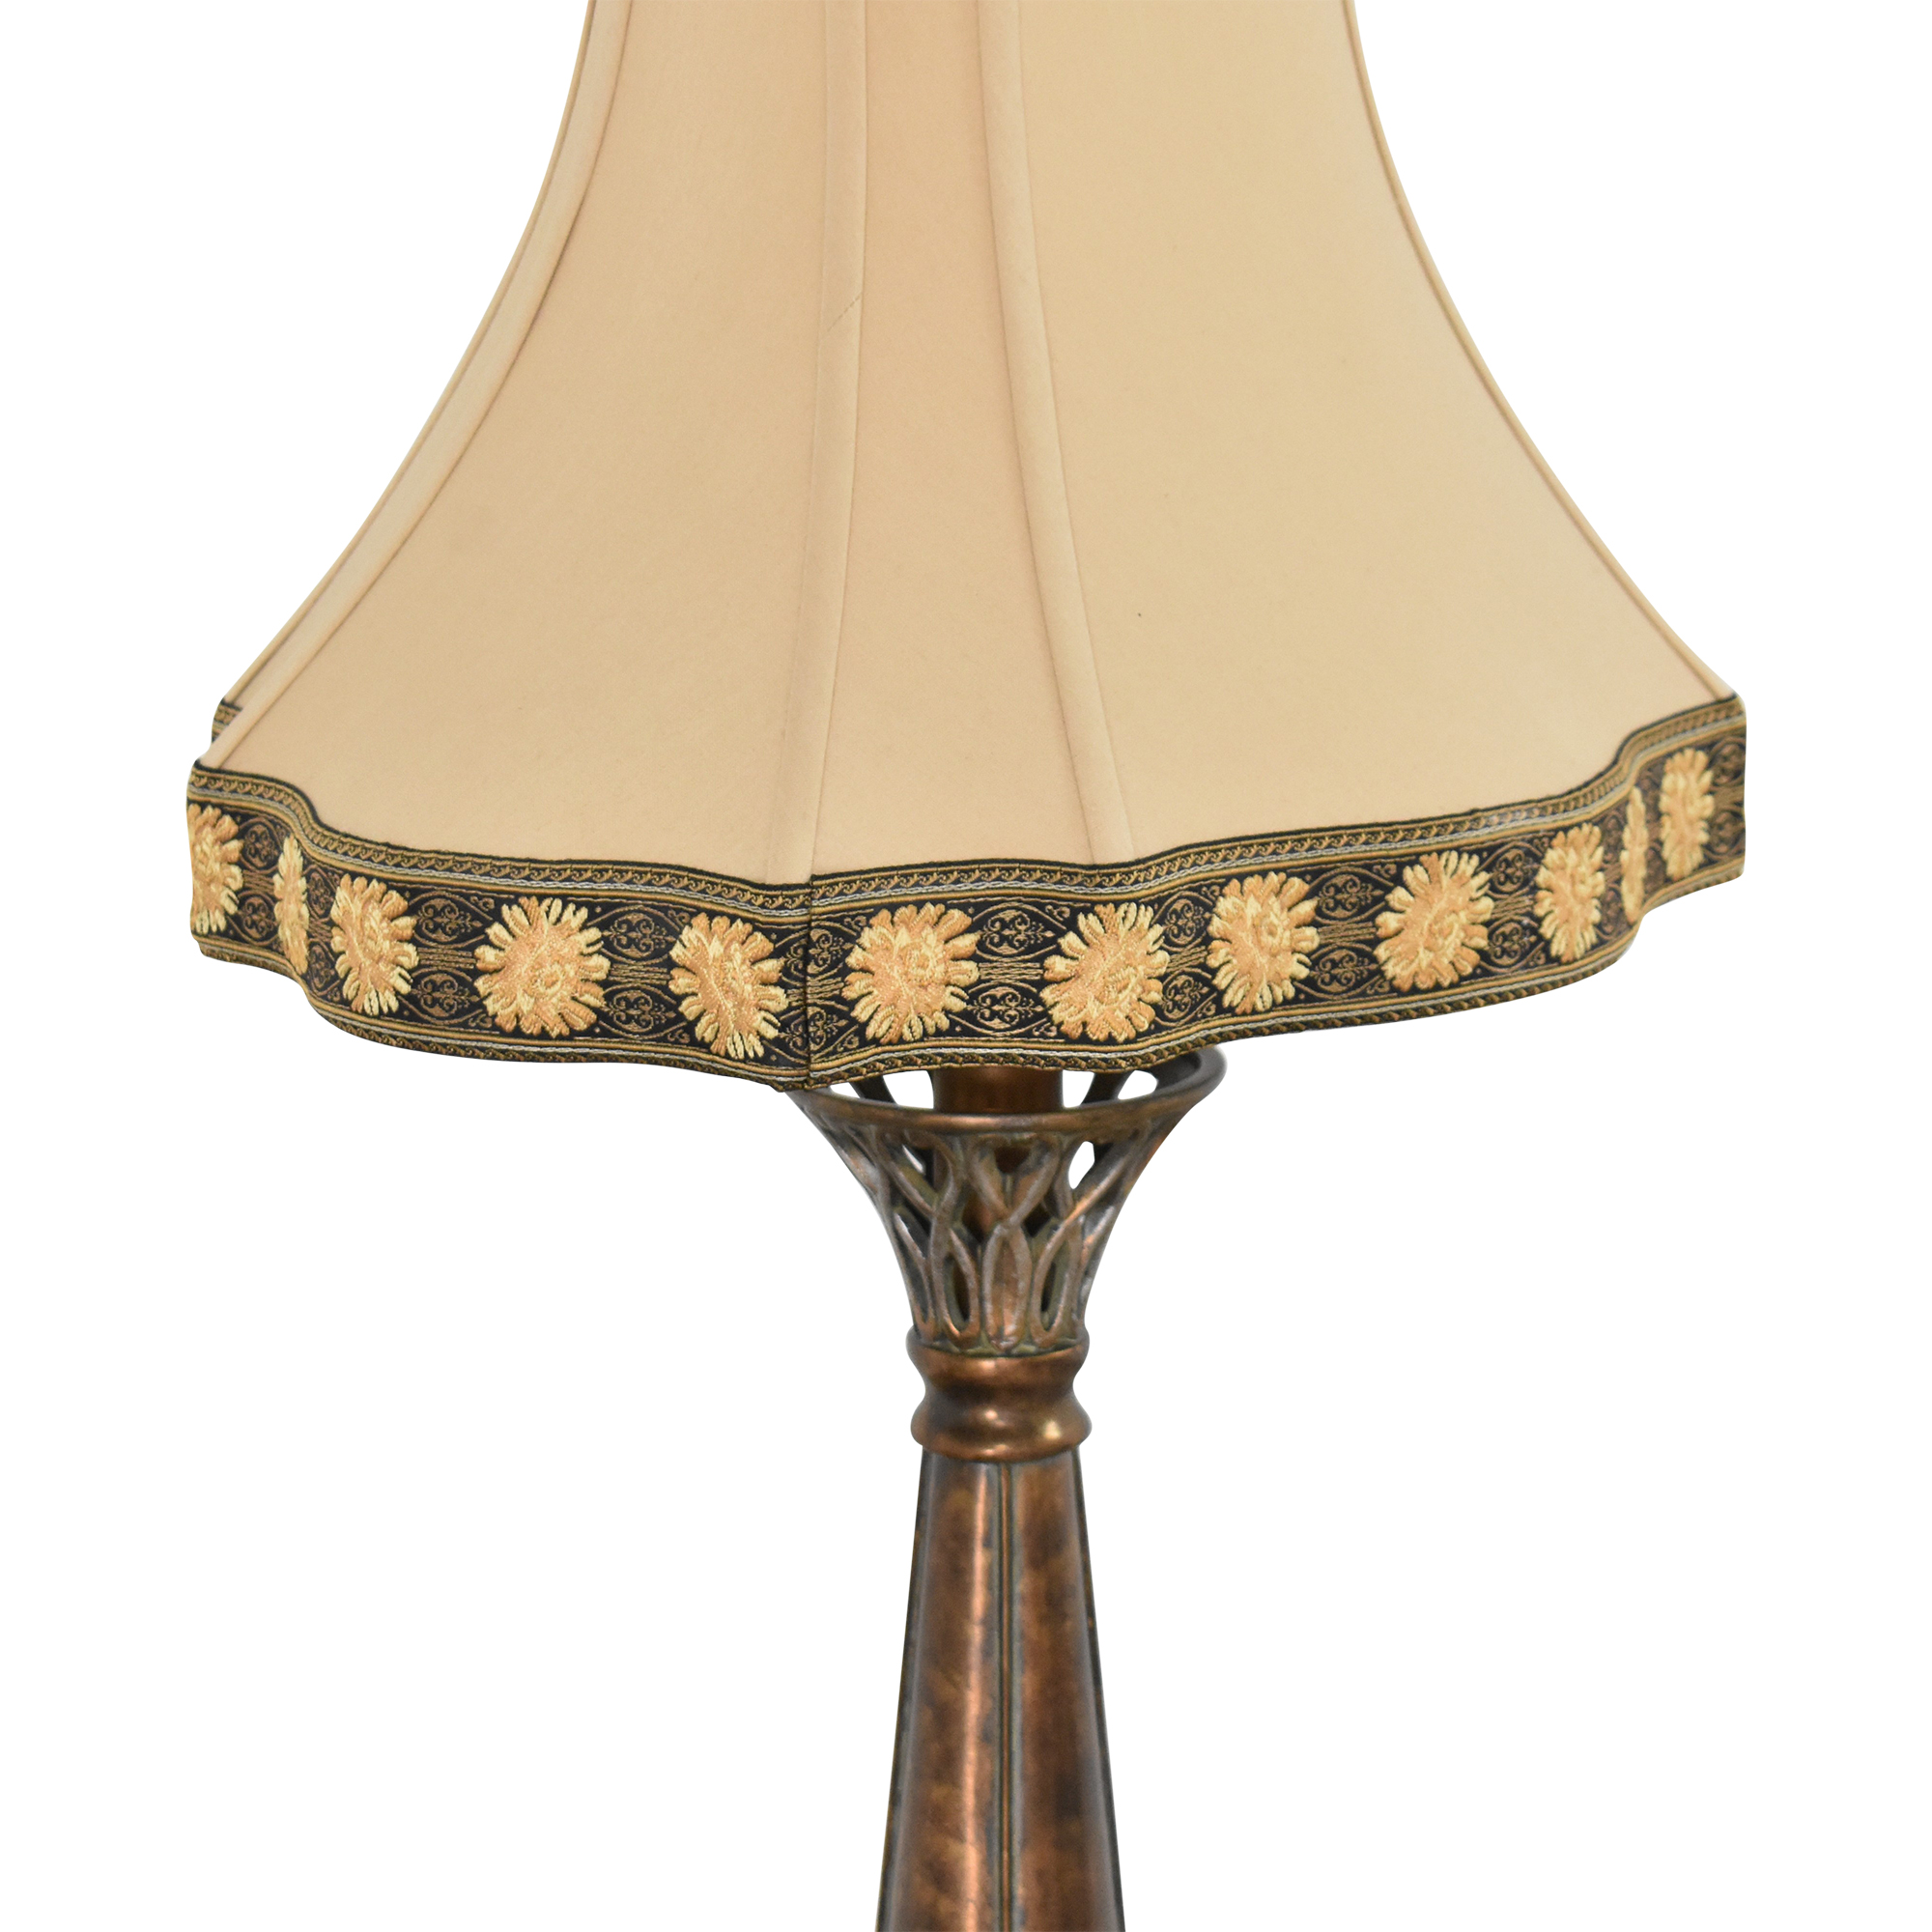 Ethan Allen Ethan Allen Flame Table Lamp discount